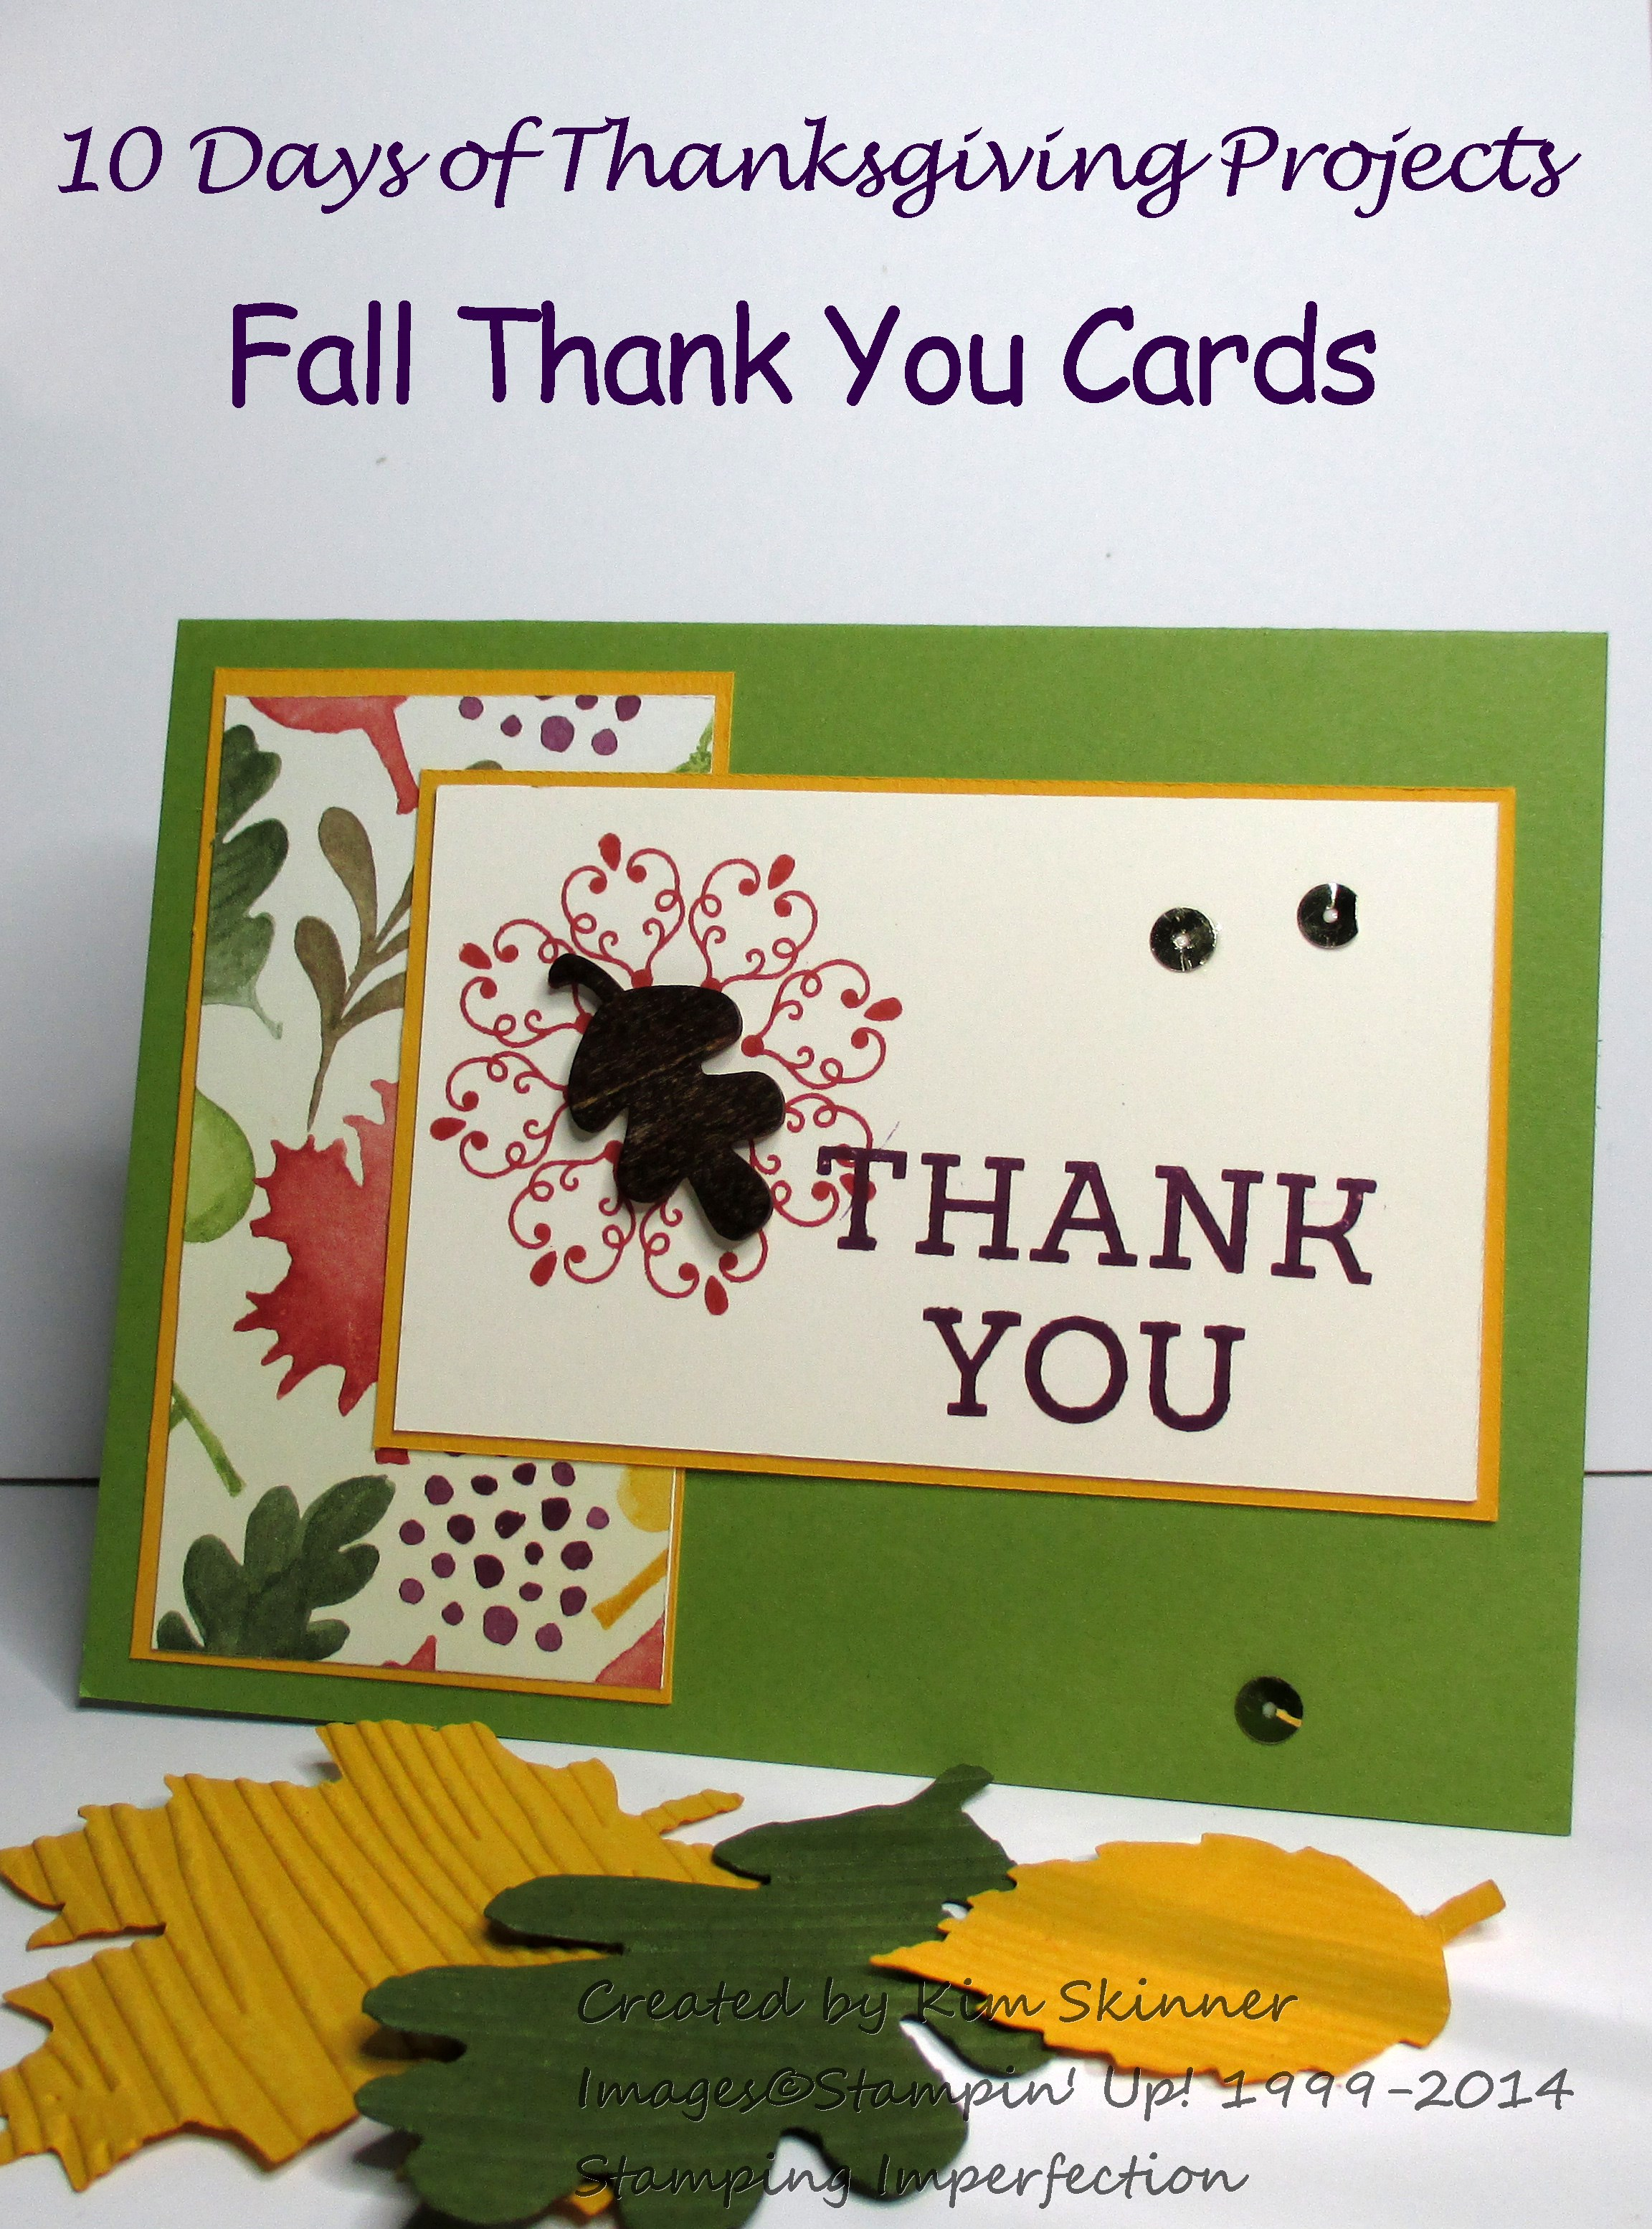 10 Days of Thanksgiving Projects Day 5 Fall Thank You Card